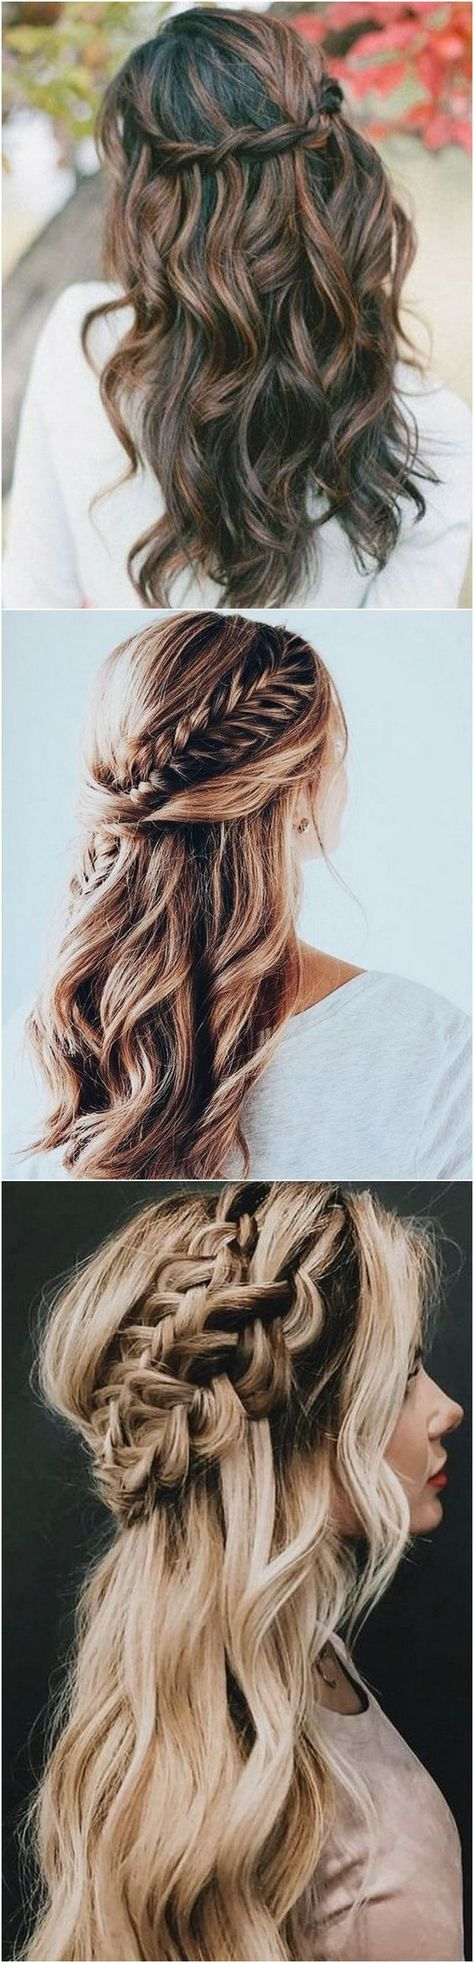 Prime 20 Half Up Half Down Wedding ceremony Hairstyles for 2018/2019